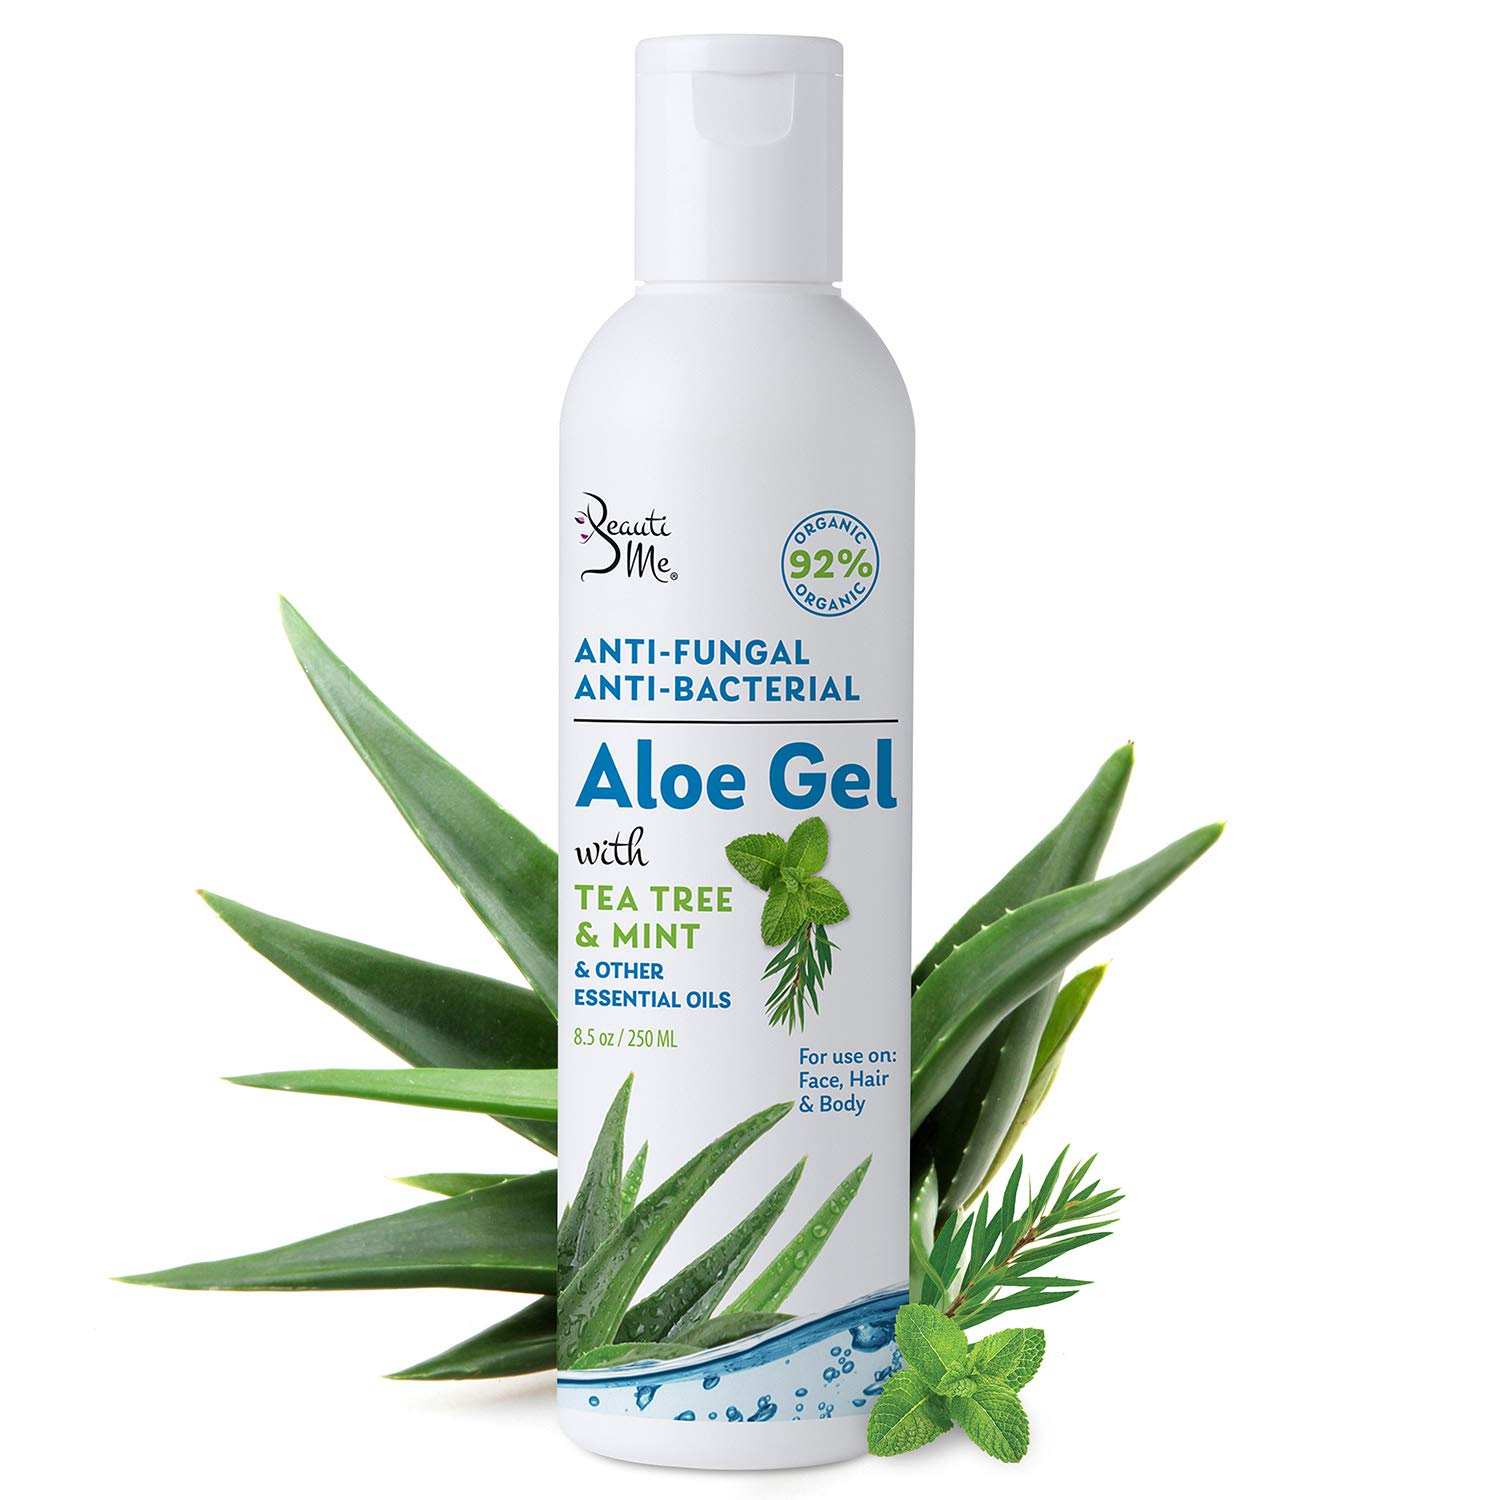 Beauti Me Therapeutic Aloe Vera Gel with Tea Tree and Mint - Anti-Fungal and Anti-Bacterial - Natural and Organic